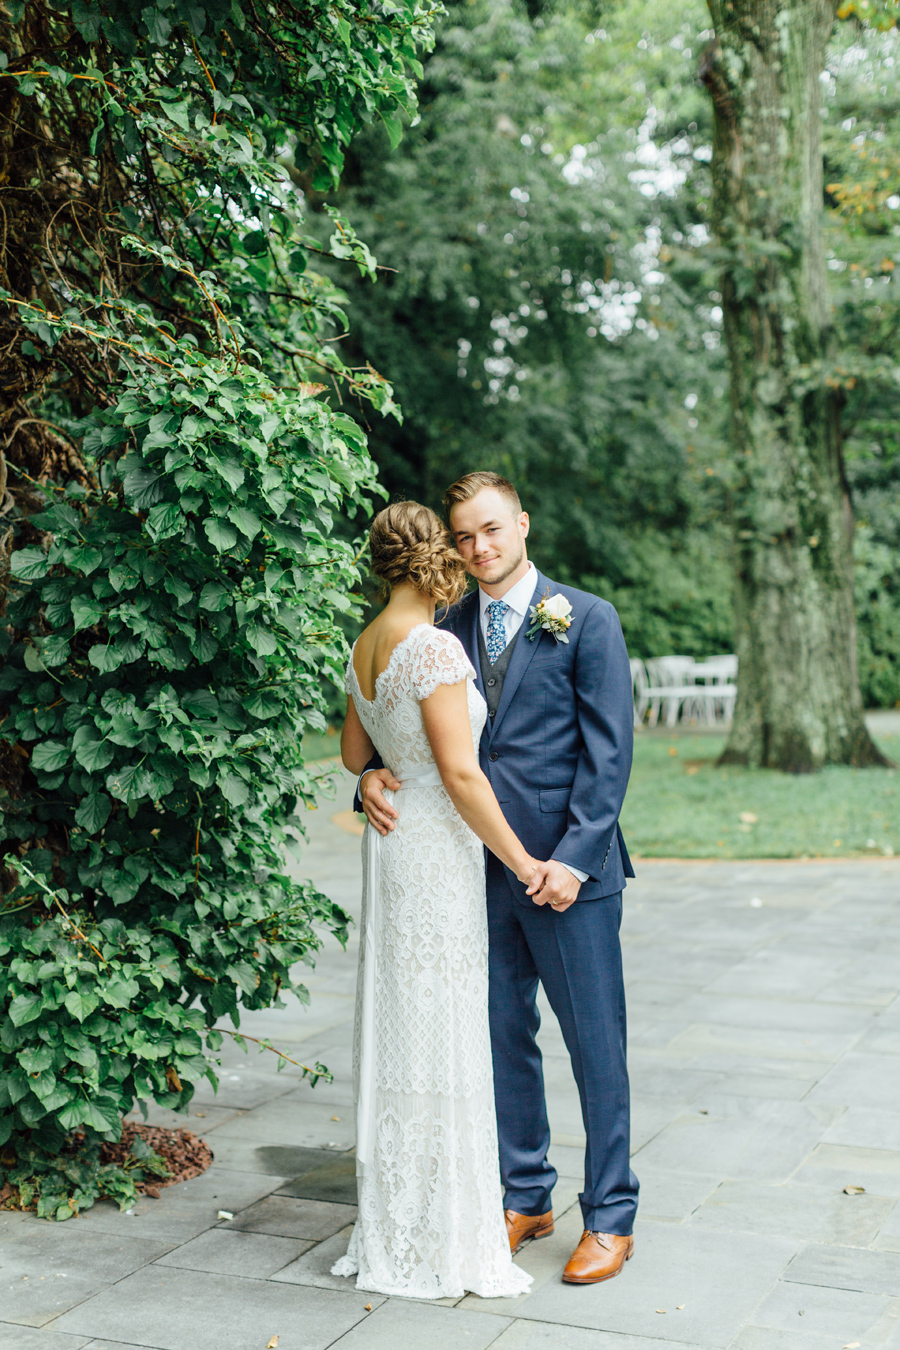 greenville-country-club-wedding-philadelphia-wedding-photographer-rebekah-viola-photography (127).jpg